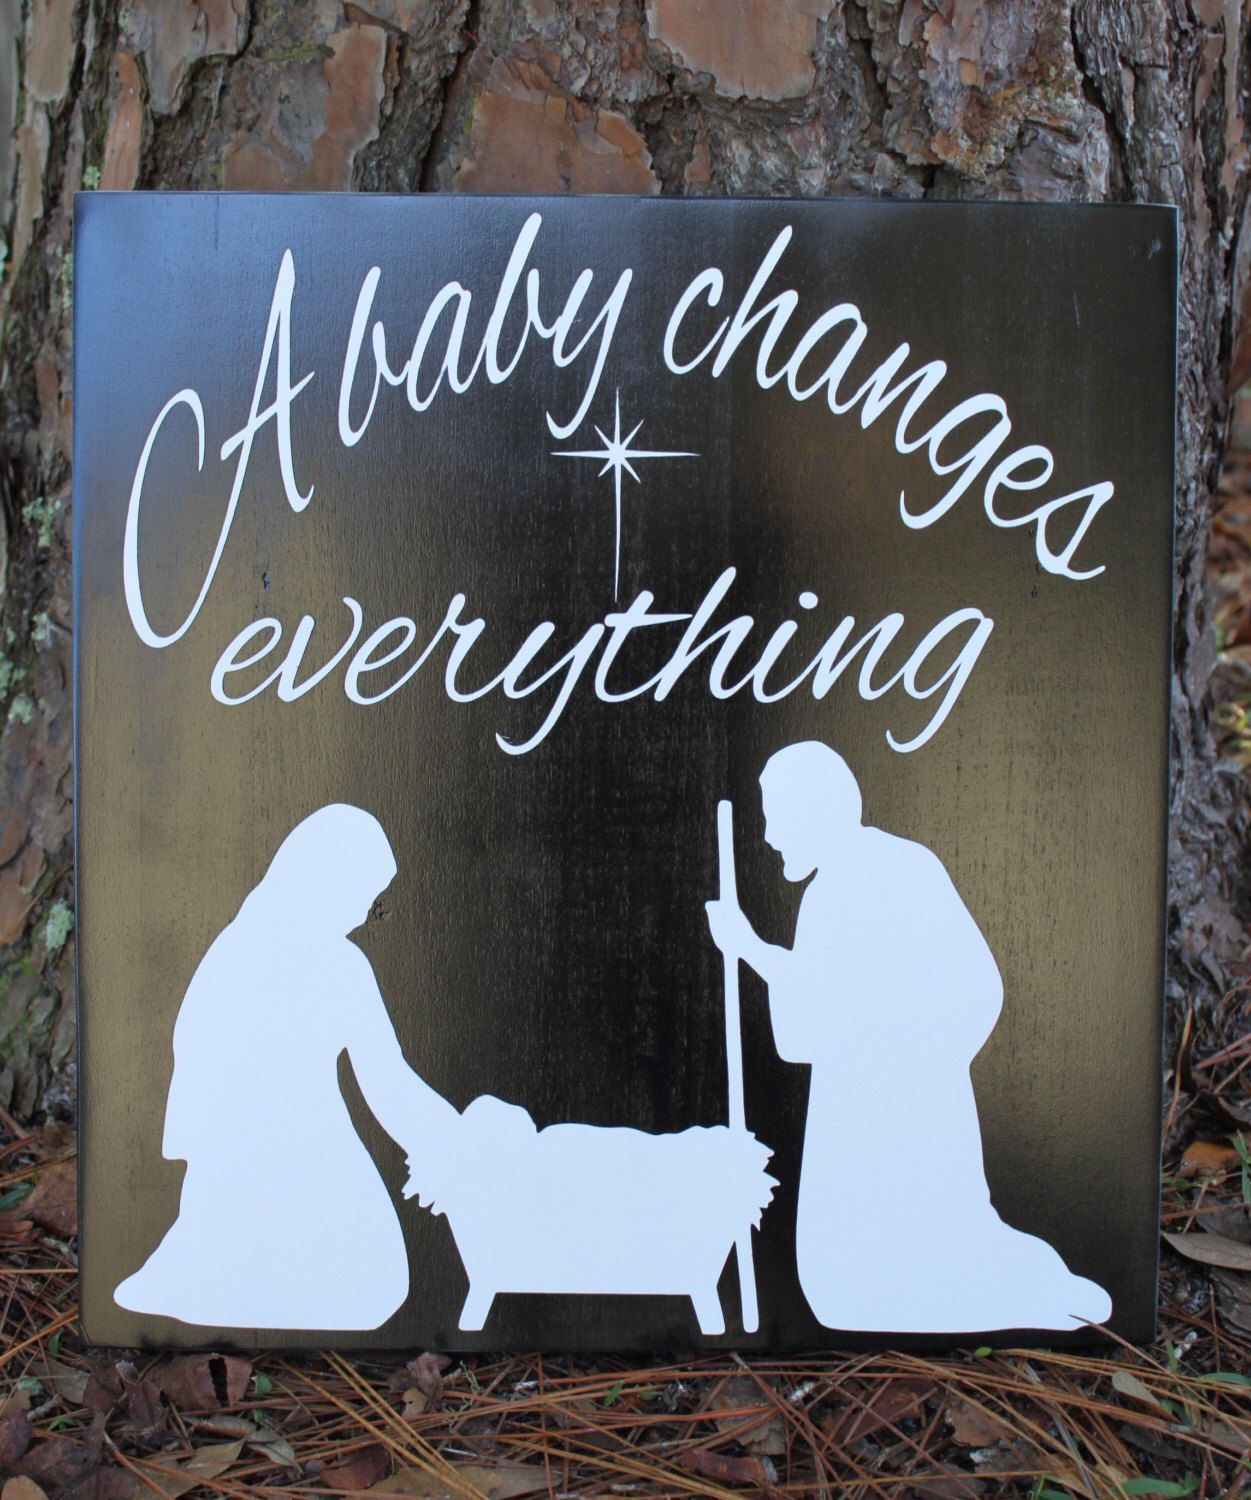 Christmas Wood Sign - A Baby Changes Everything - Nativity Wood Sign, Baby Jesus Sign, Christmas Nativity Sign, Black/White Christmas Sign by RusticRedbird on Etsy https://www.etsy.com/listing/255454700/christmas-wood-sign-a-baby-changes